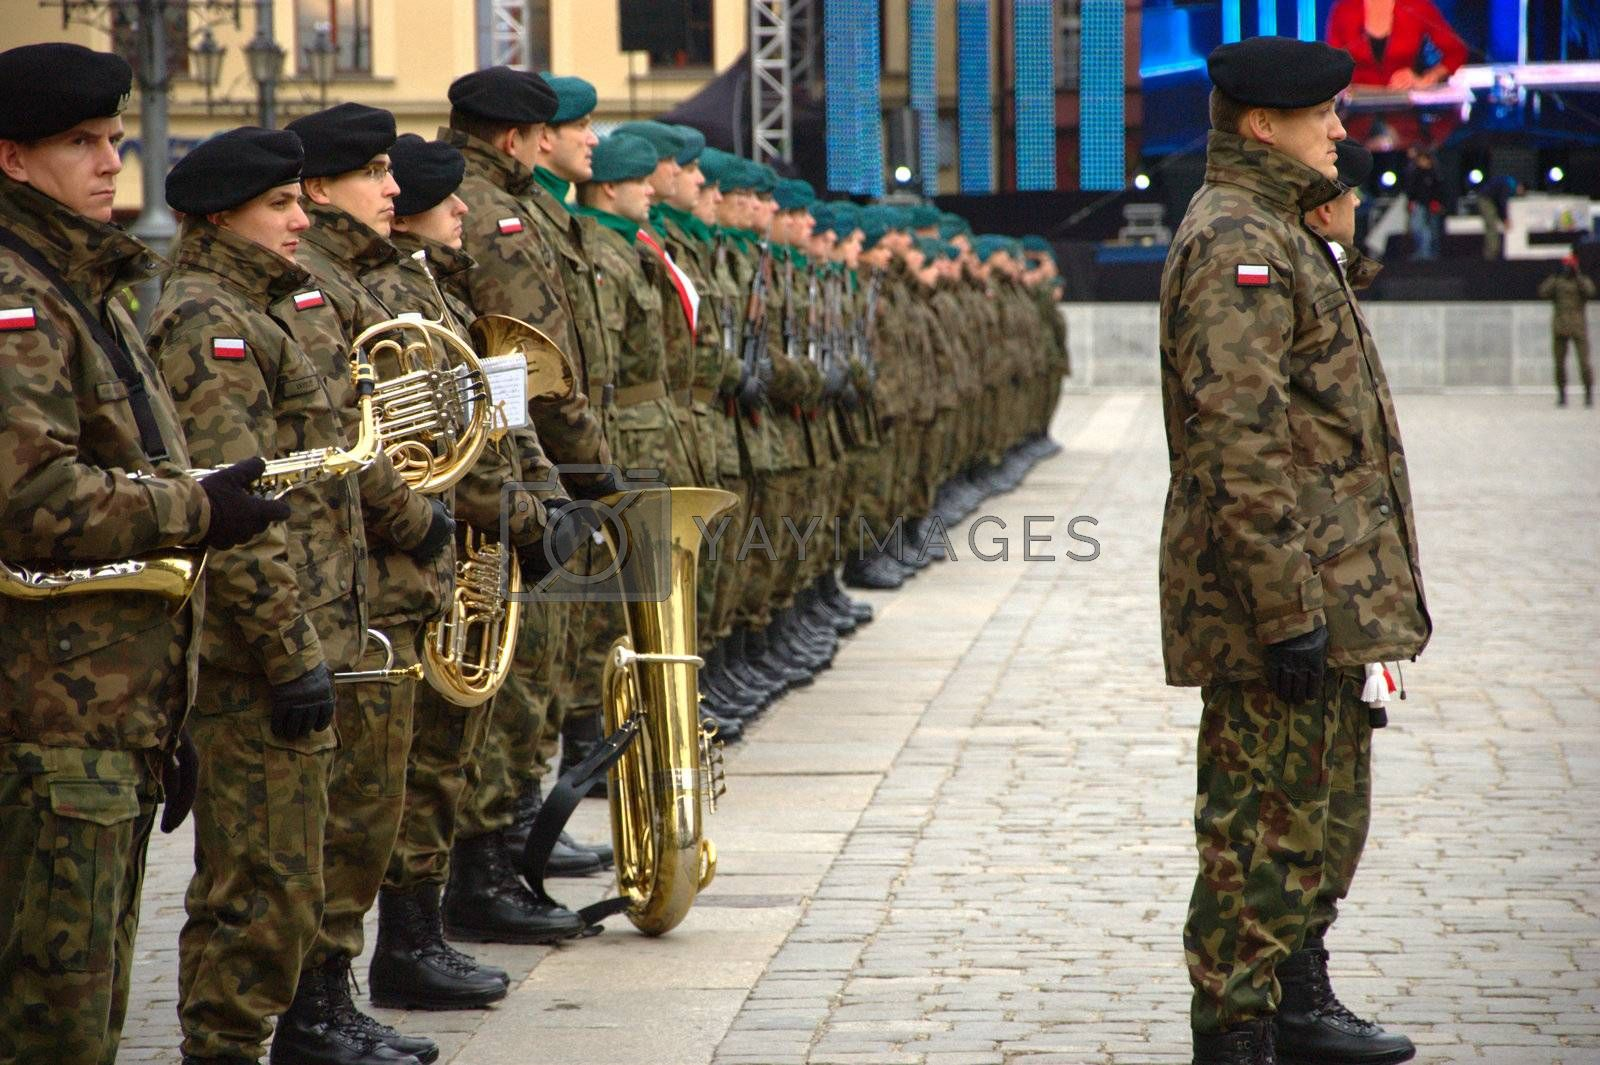 WROCLAW, POLAND - DECEMBER 2: Polish army, engineering training center for troops receives new army banner. Units gathering on December 2, 2011.